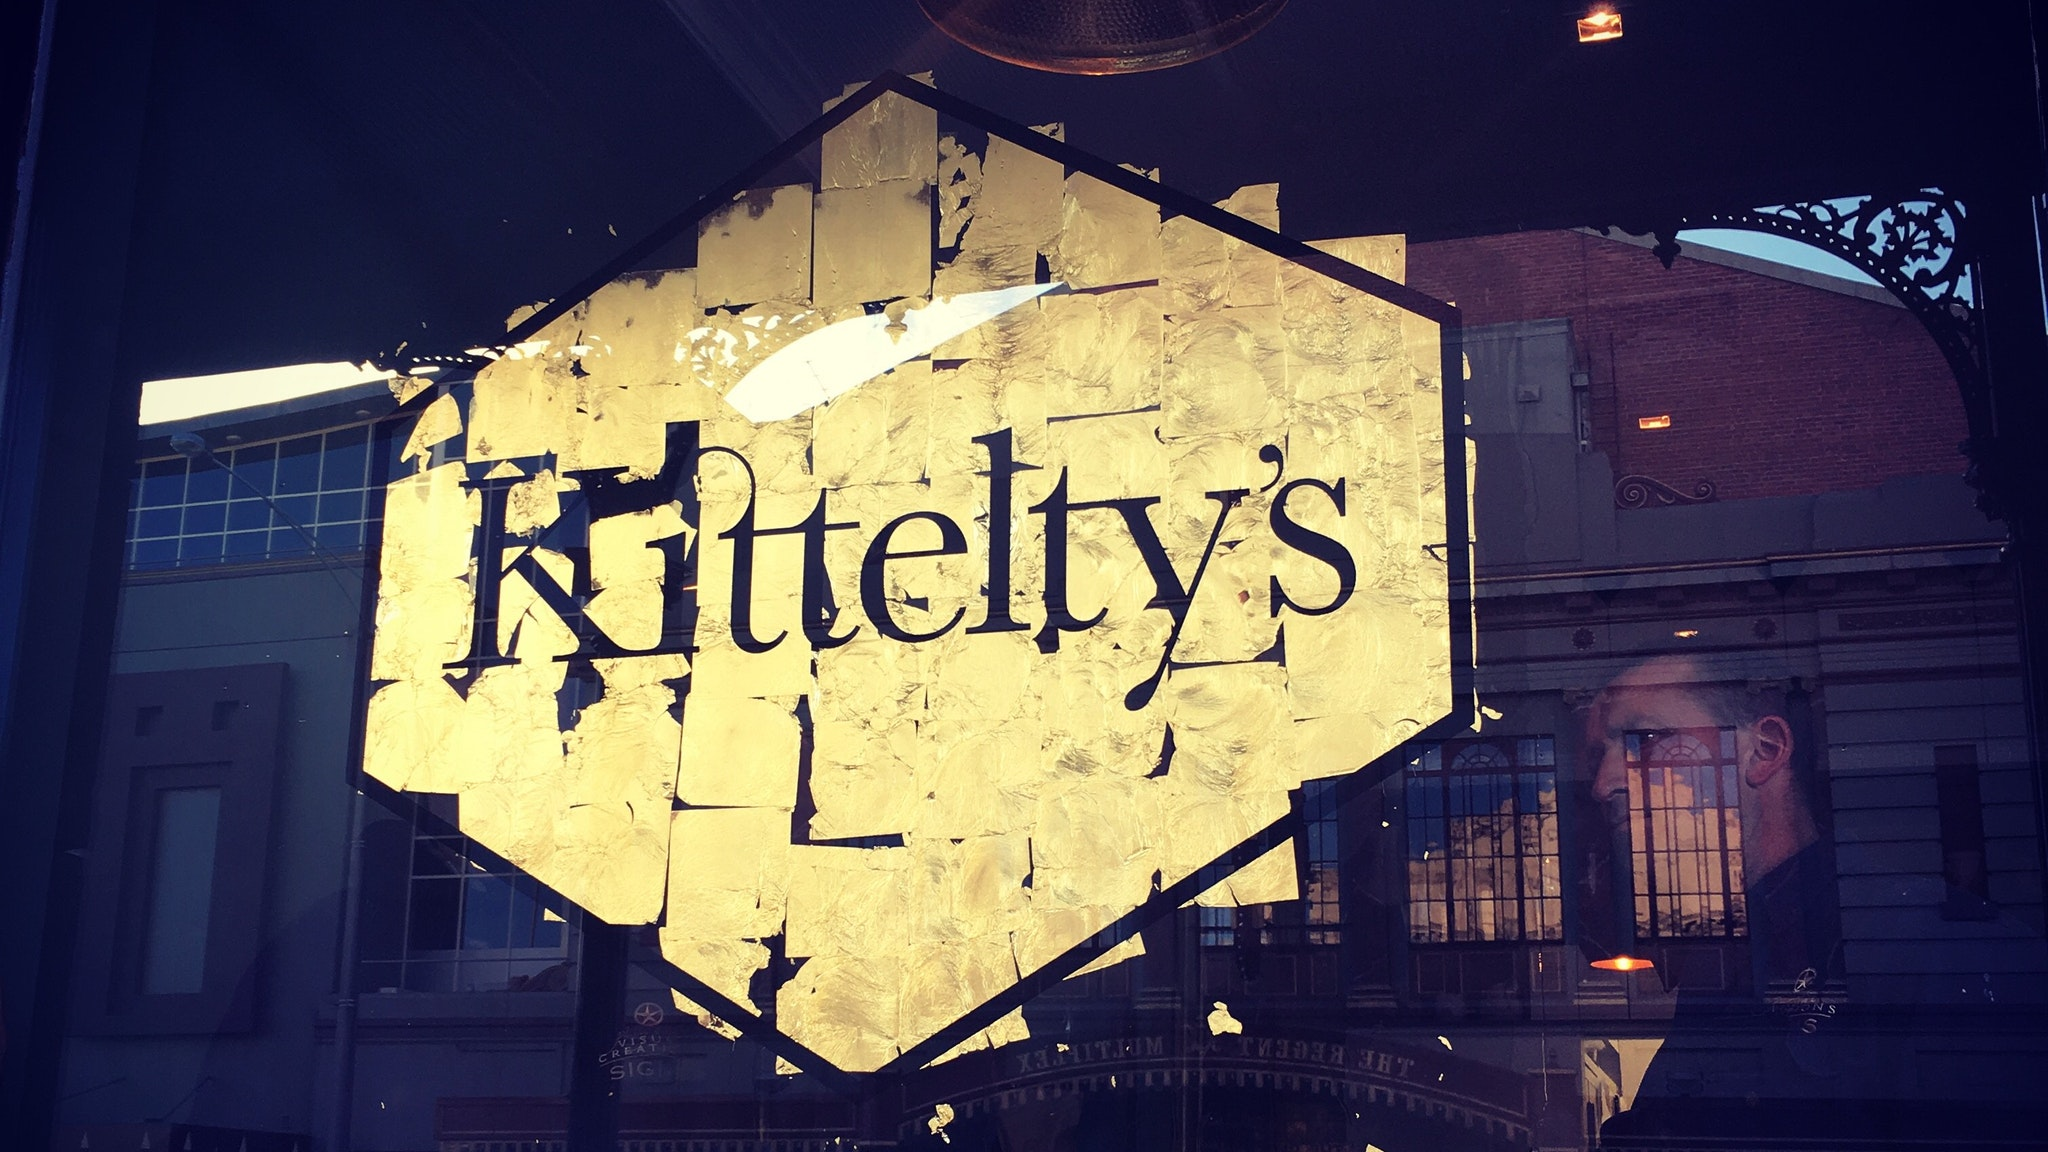 Kittelty's